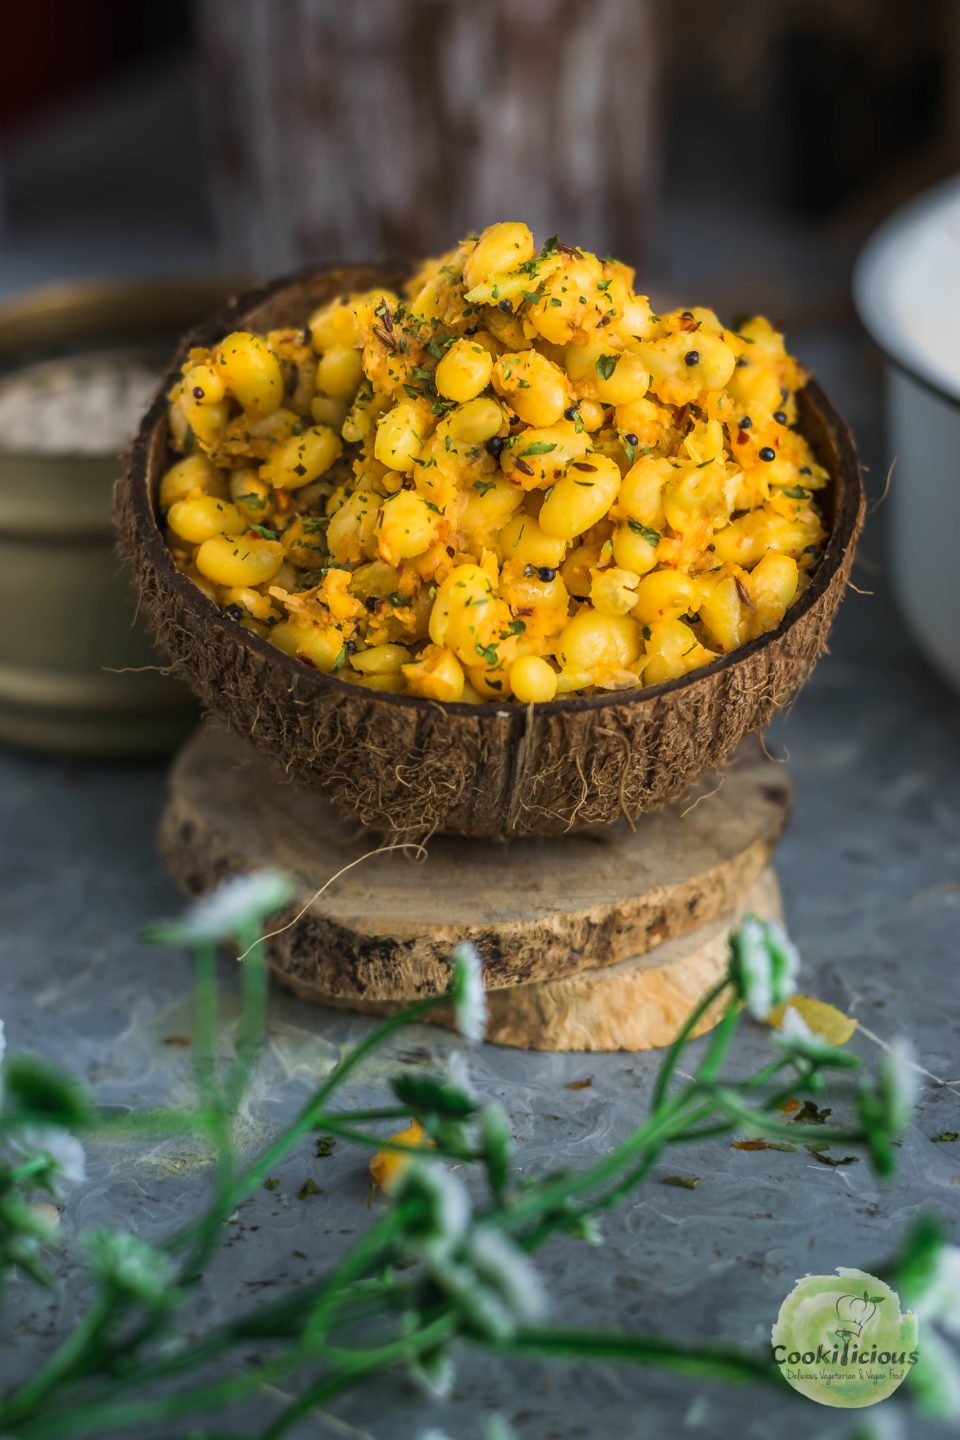 navy beans sundal in an empty coconut shell